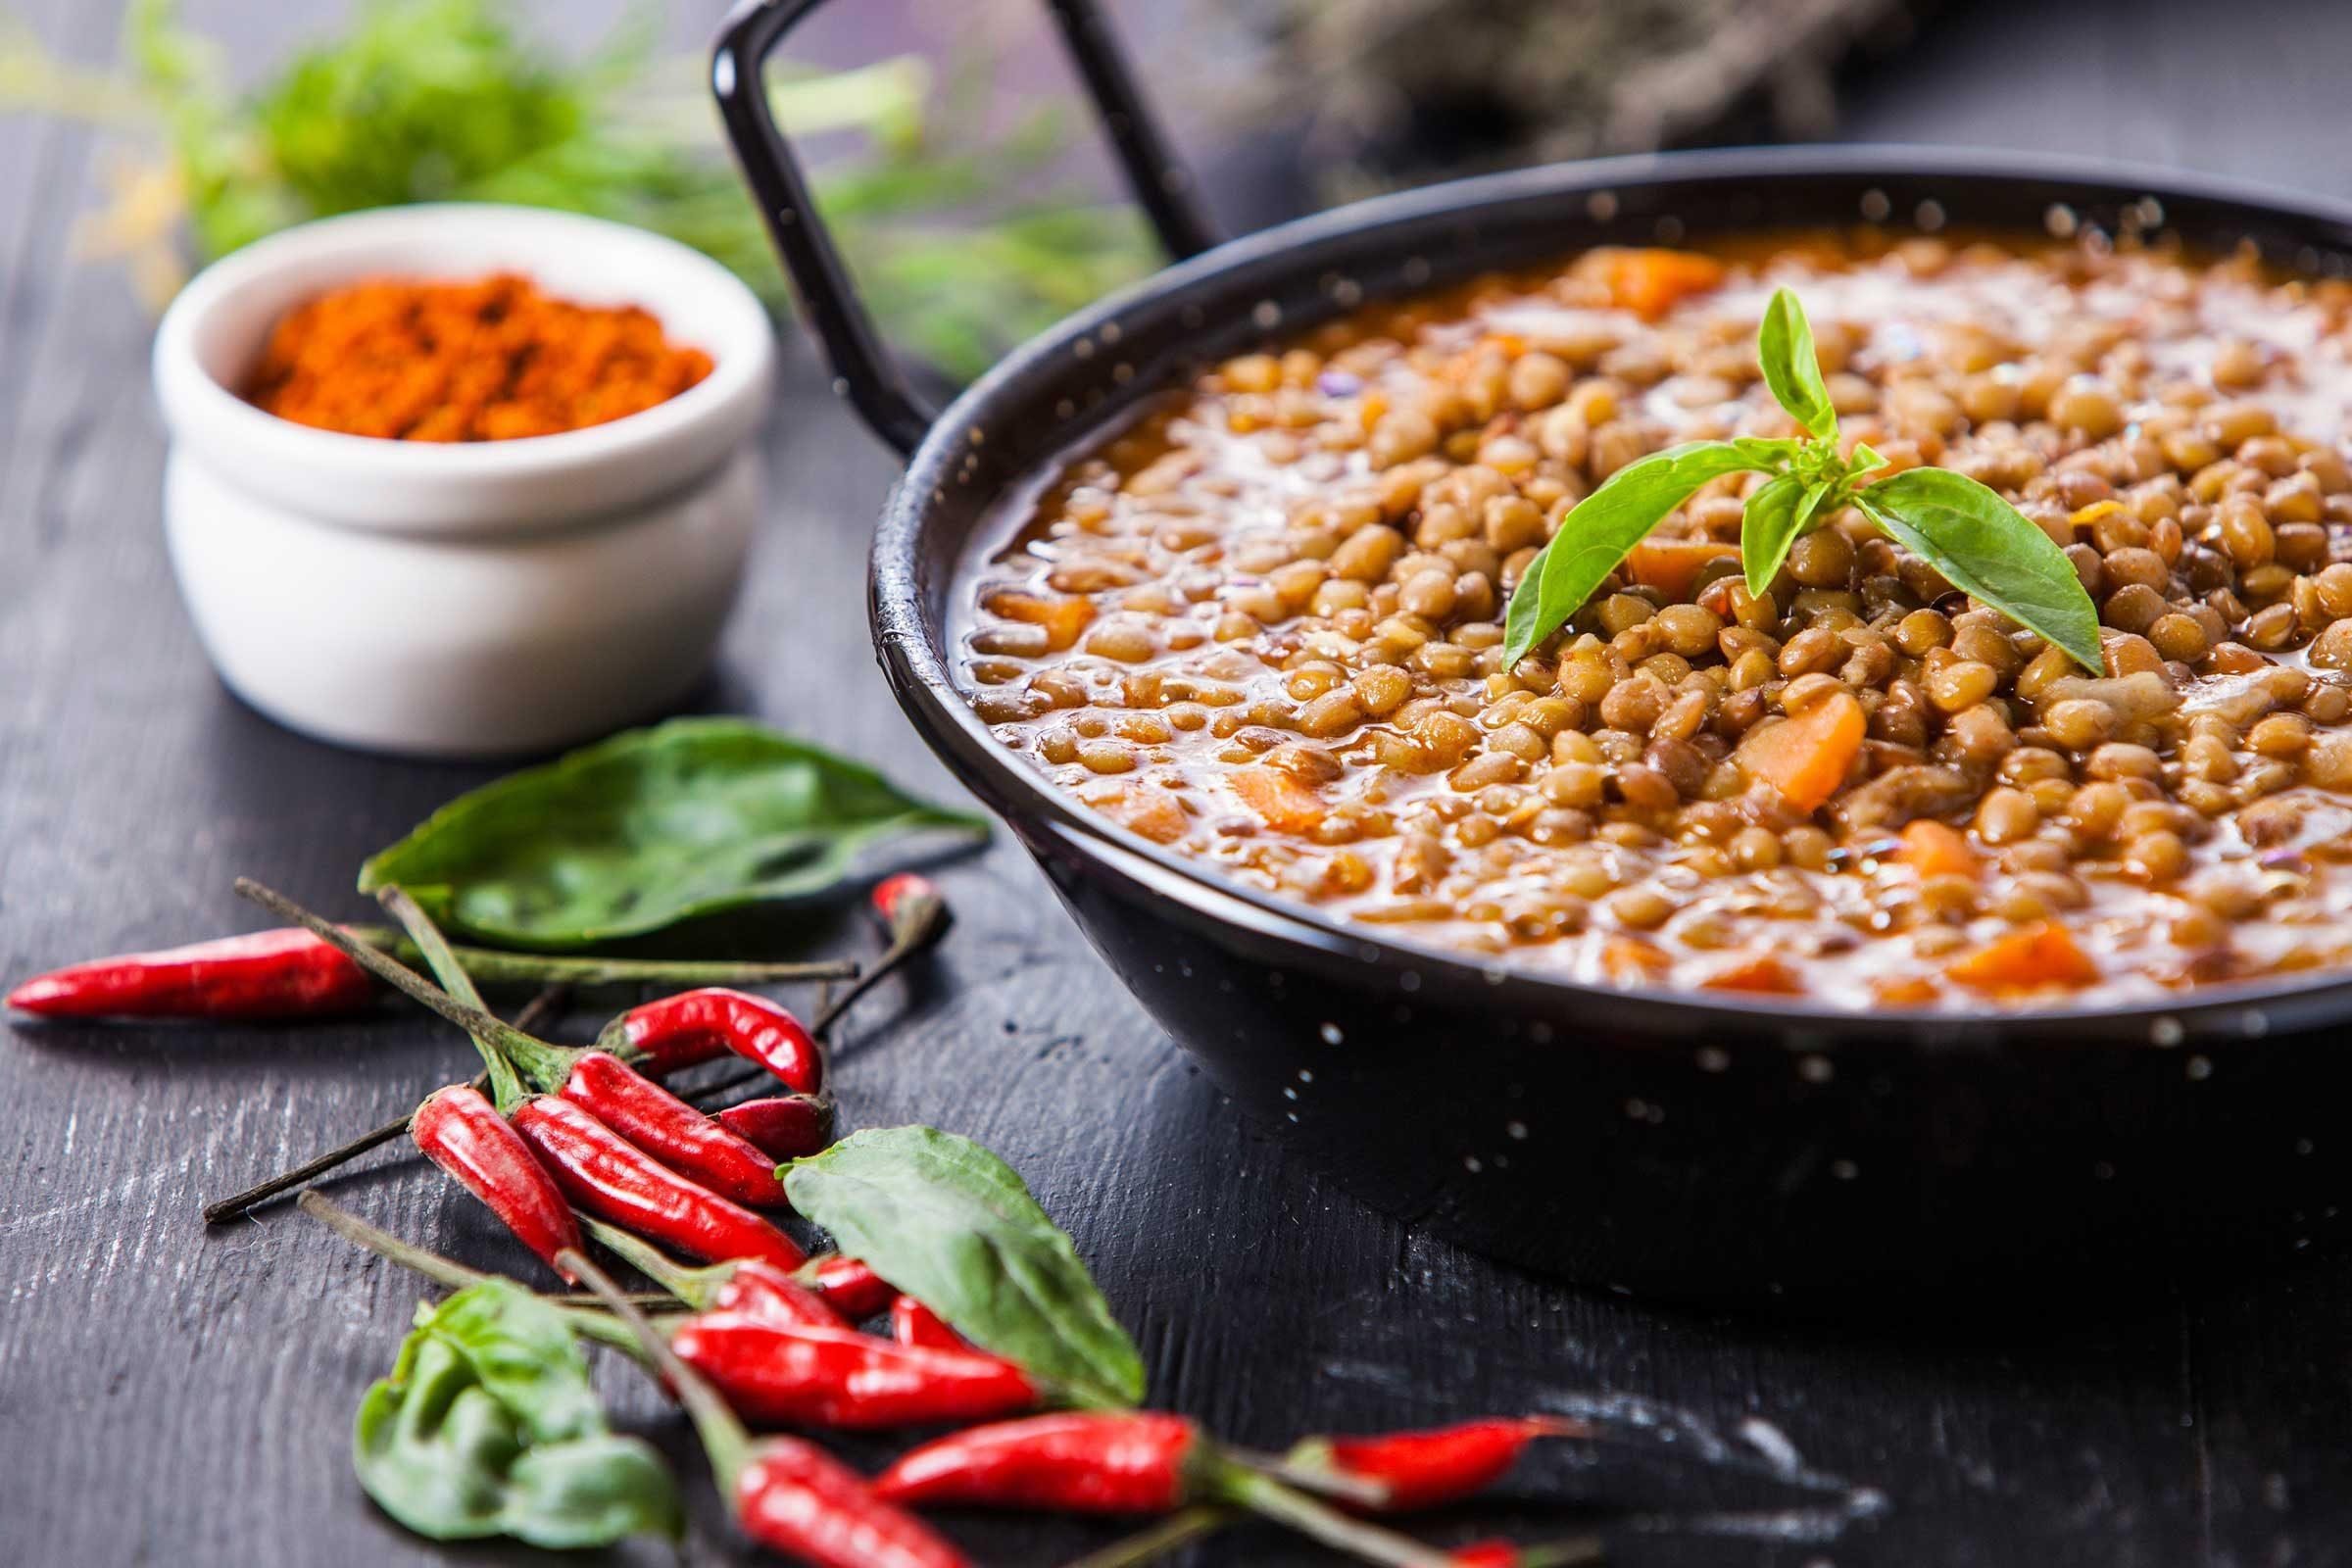 Lentils (1 cup of cooked lentil = 18 grams of protein)